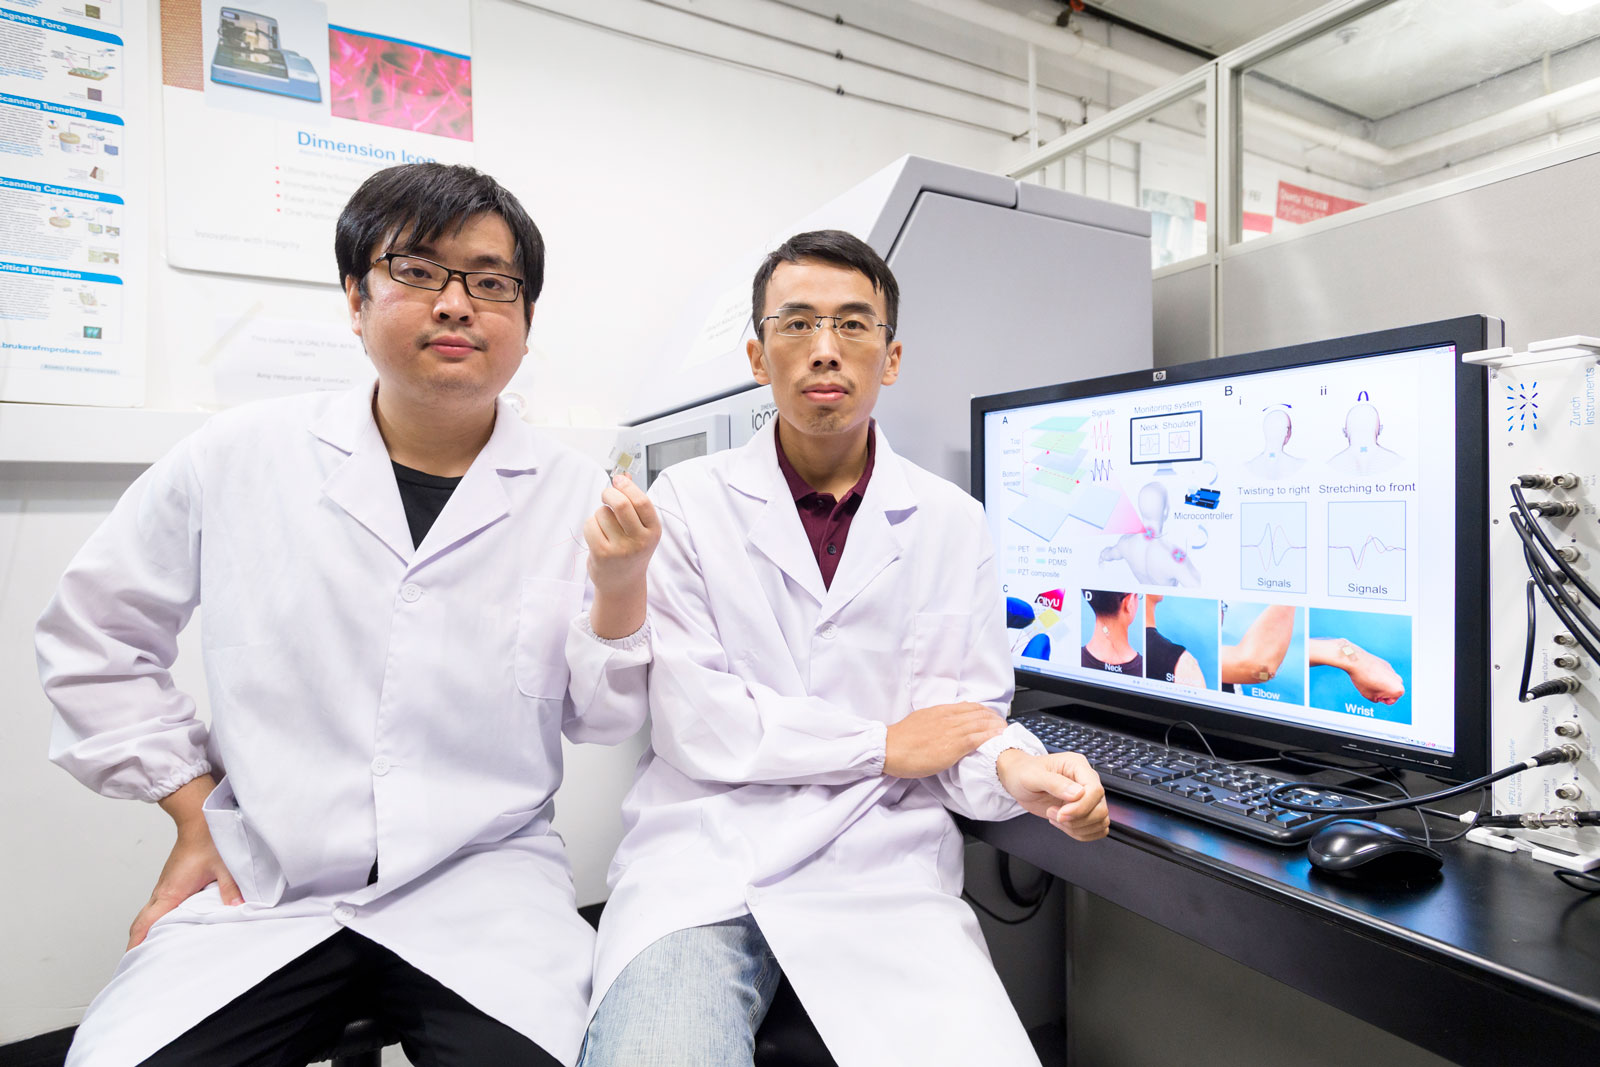 (From right) Dr Yang Zhengbao and Hong Ying, members of the research team.